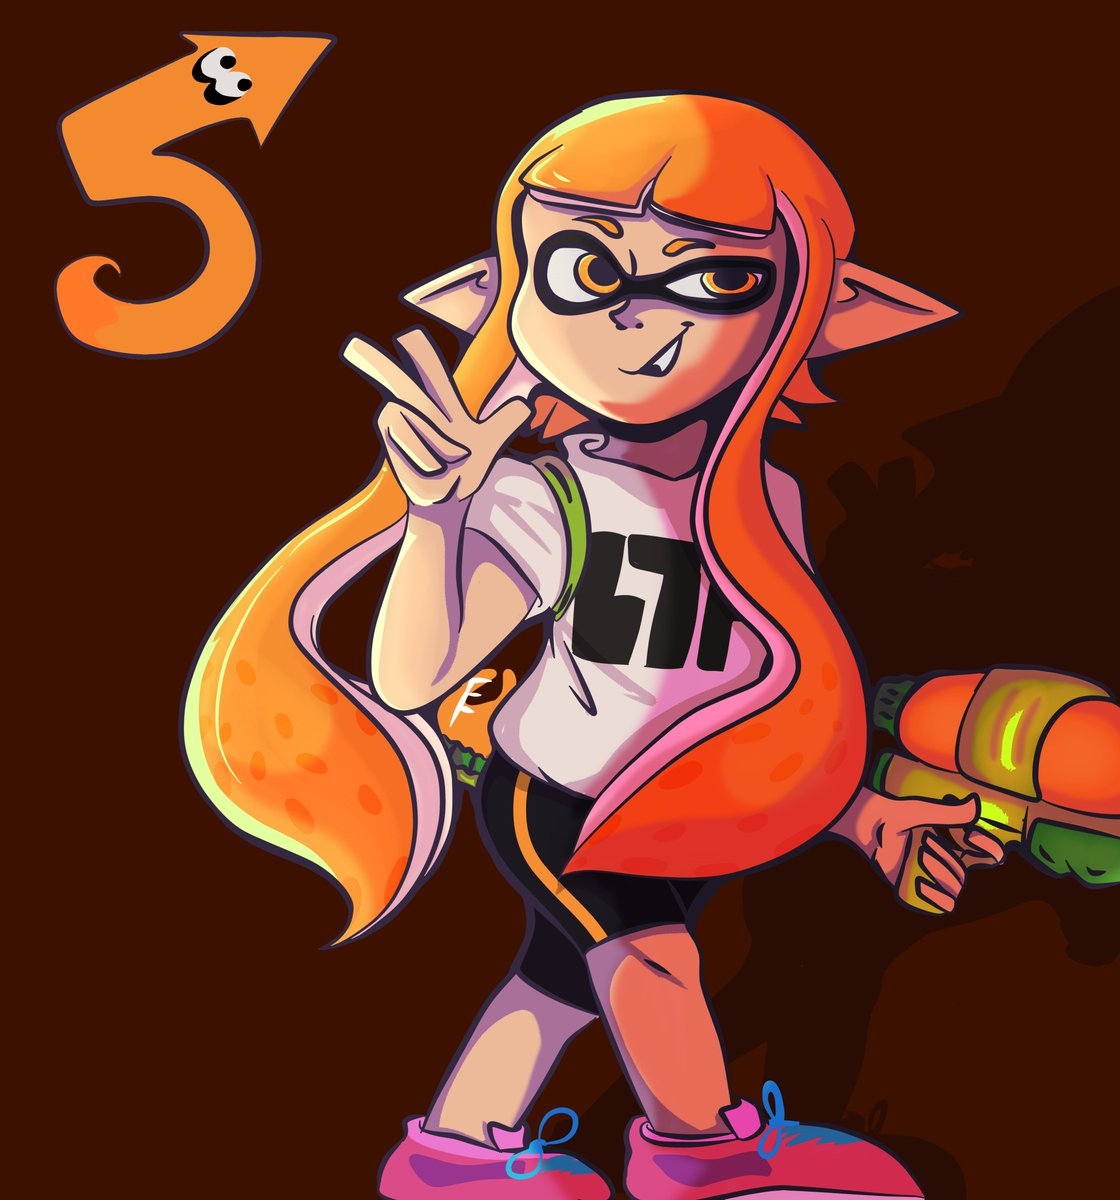 We are so close to Splatoon coming to its fifth anniversary.  Just three more days to go! More art to come in the next few days, happy birthday Splatoon! - 🦑#SplatArt #Splatoon #digitalart